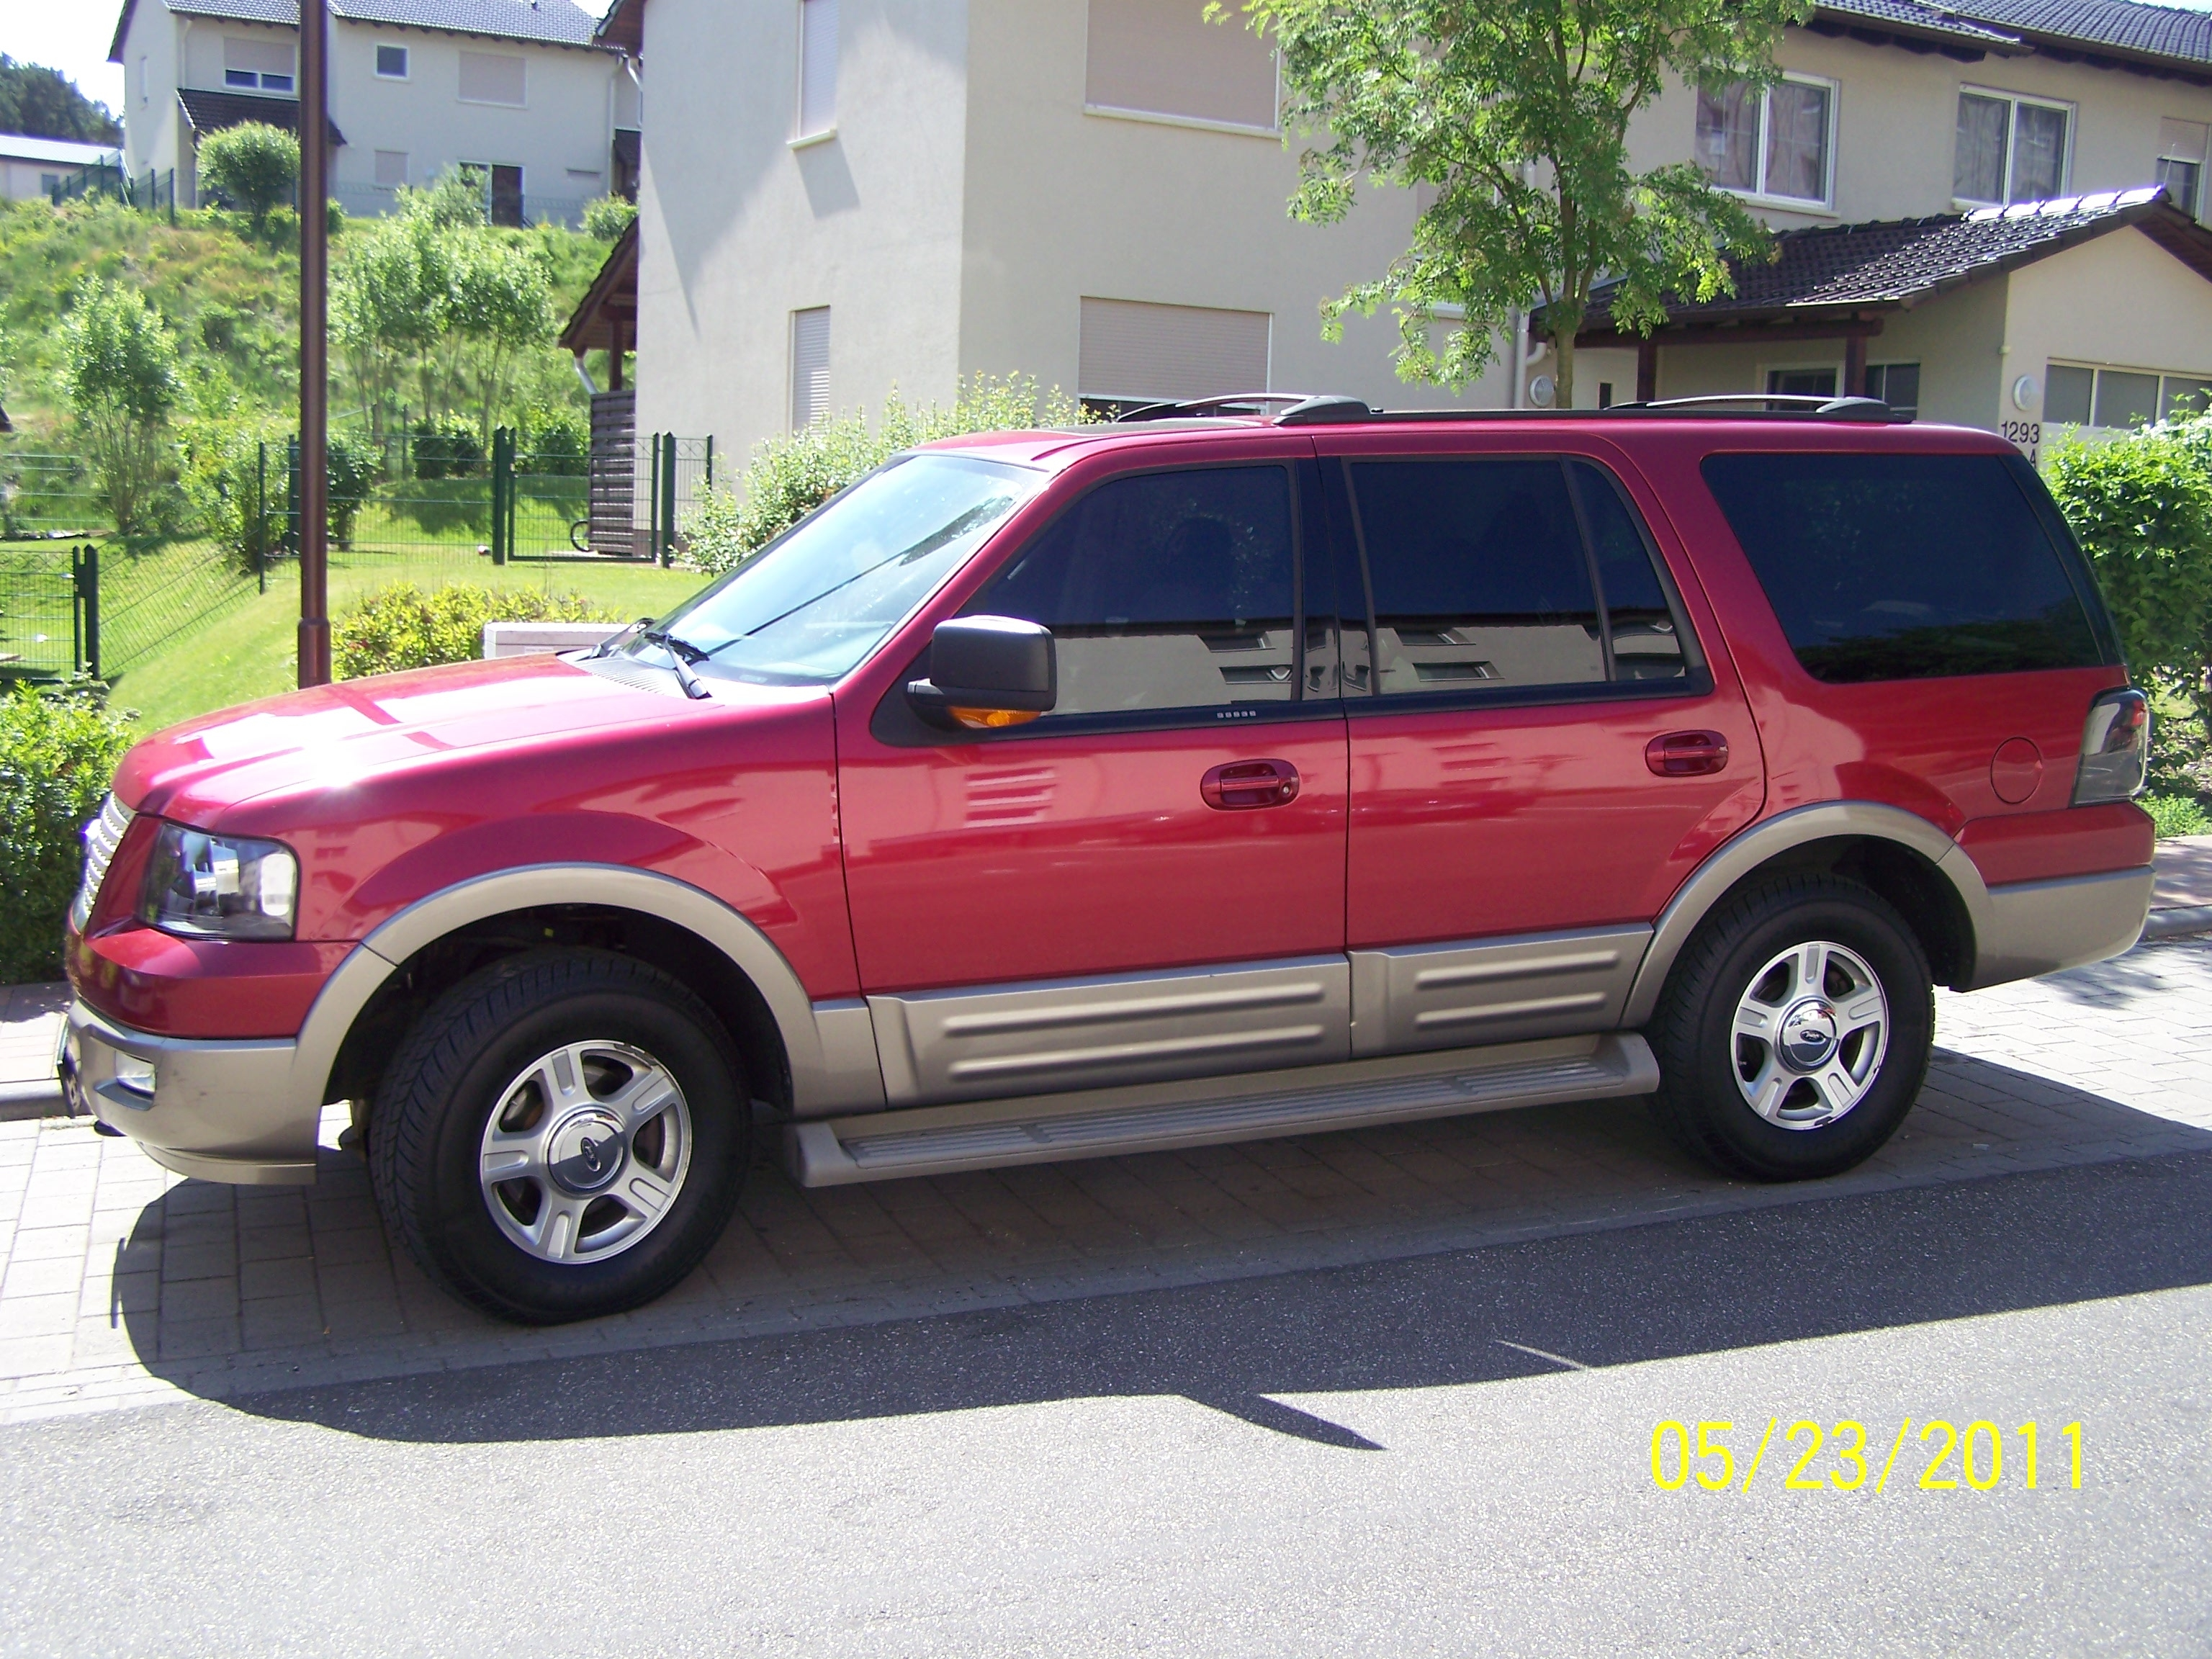 Ford Expedition 2004 foto - 5